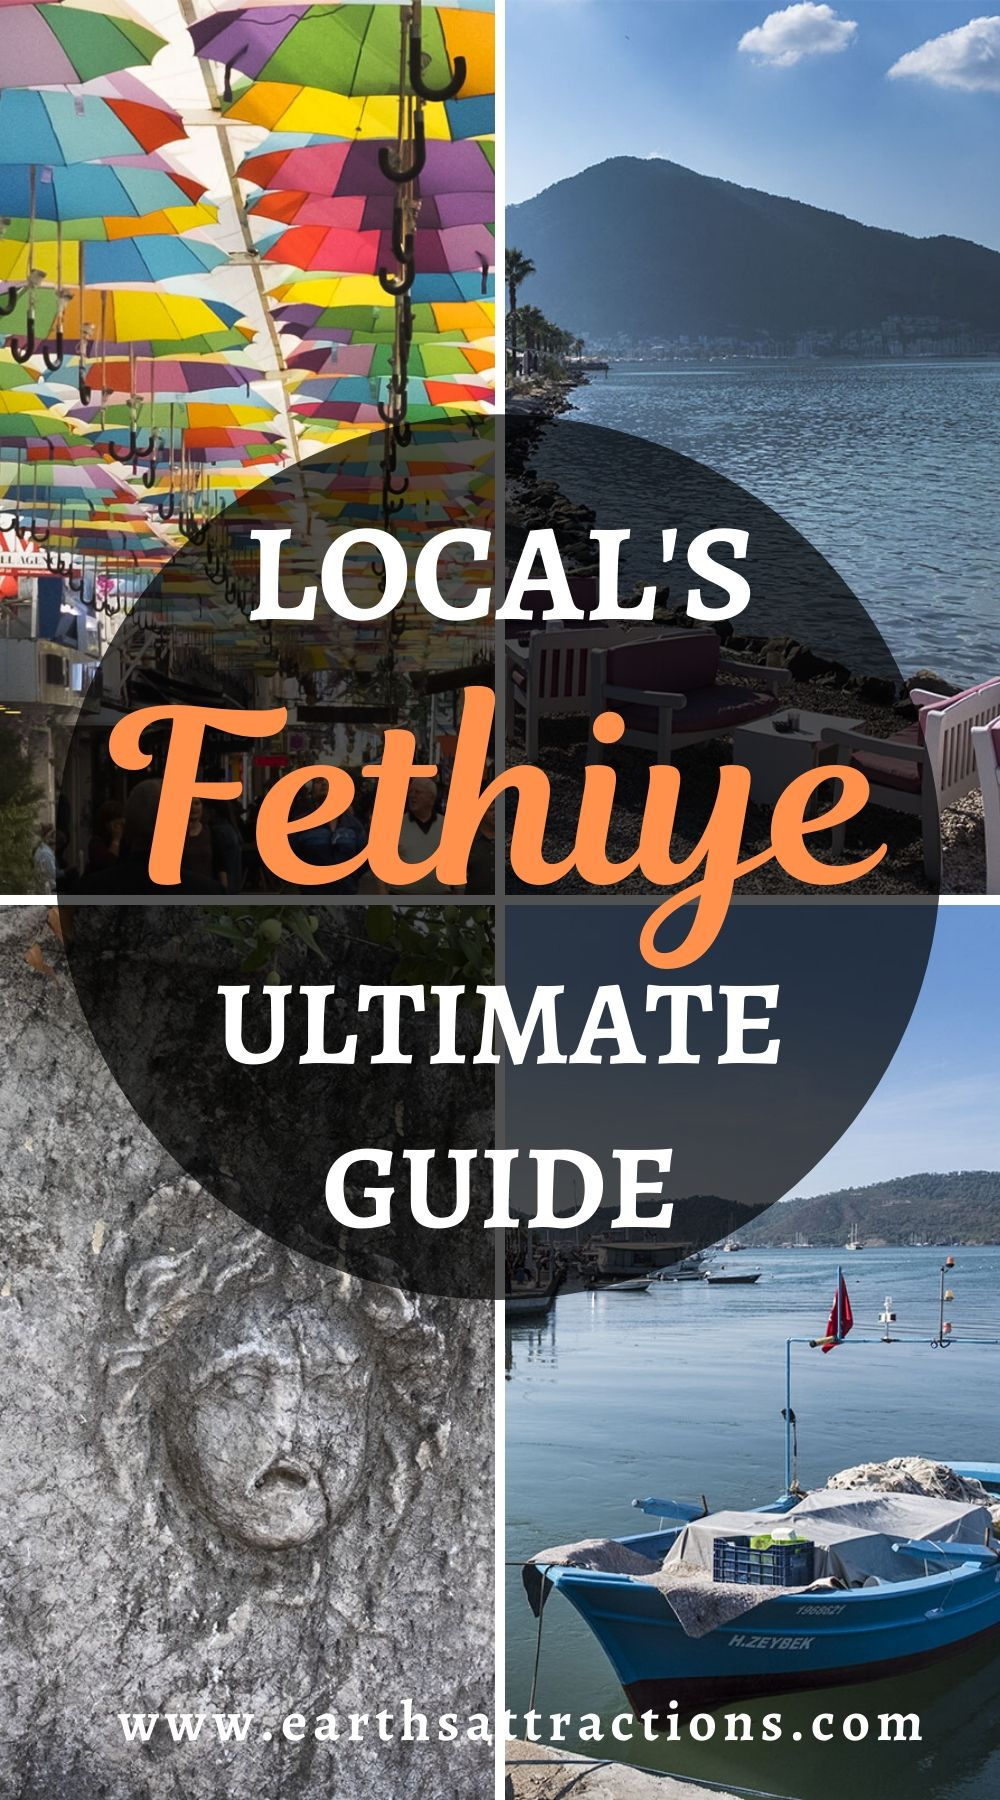 Things to do in Fethiye, Turkey. Read this local's guide to Fethiye now to discover the top attractions in Fethiye as well as off the beaten path things to see in Fethiye. Apart from the best places to visit in Fethiye, you'll also find the top Fethiye restaurants, the best Fethiye hotels to stay at, and useful travel tips for Fethiye, Turkey. #fethiye #fethiyeguide #turkey #travelguide #thingstodo #fethiyethingstodo #earthsattractions